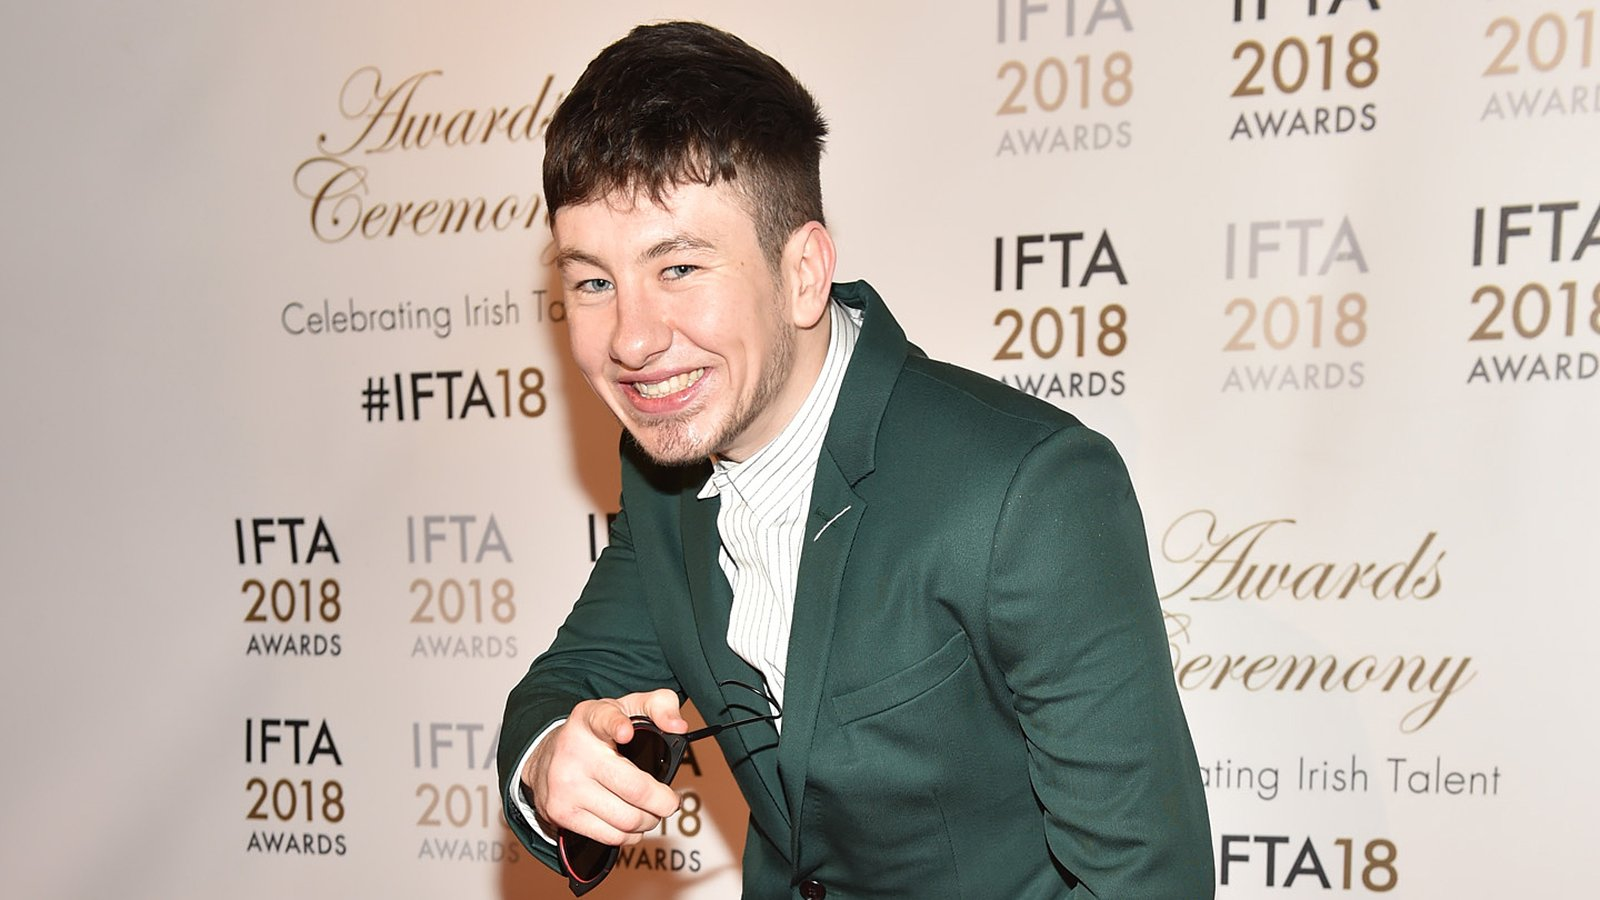 Here are the winners of the 2018 IFTAs